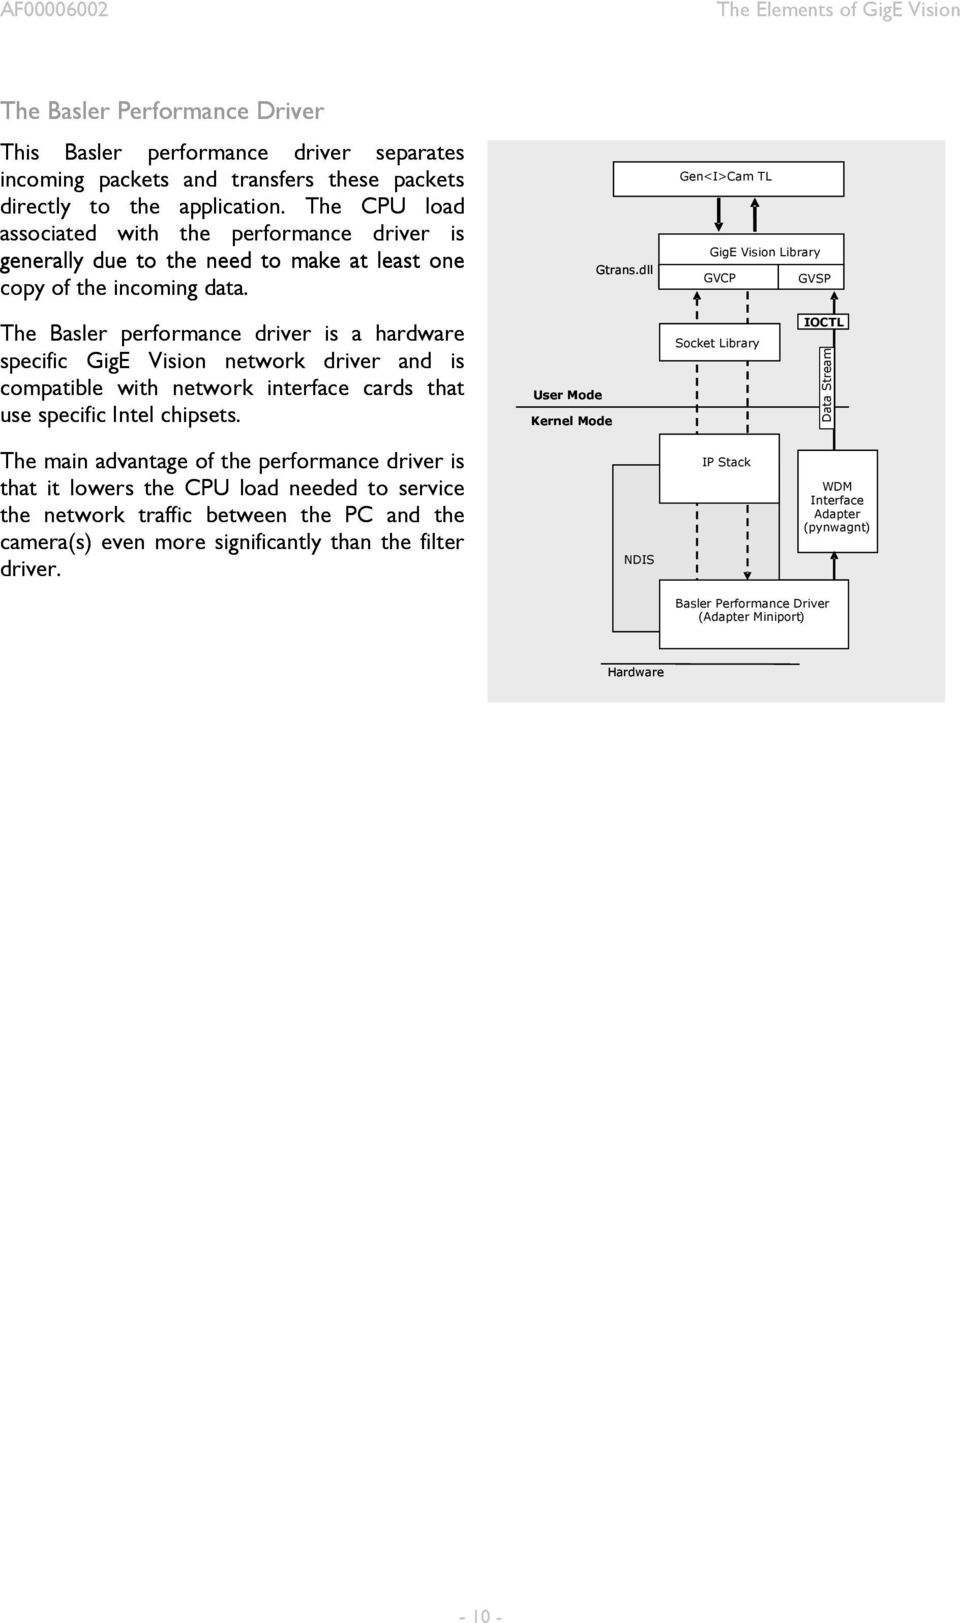 The Elements of GigE Vision - PDF